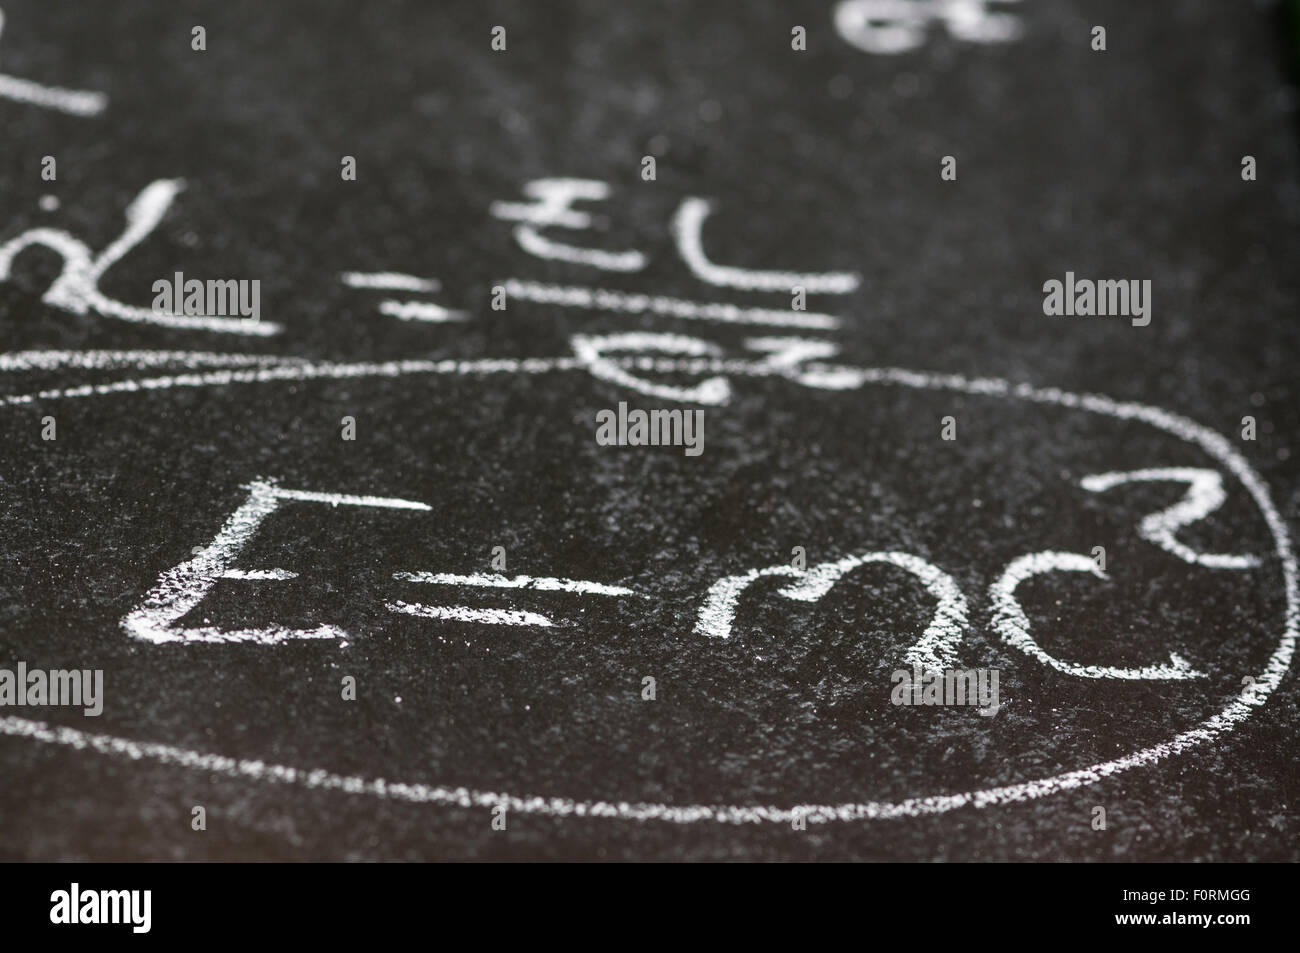 Mathematical derivation of E=mc^2 on a blackboardStock Photo